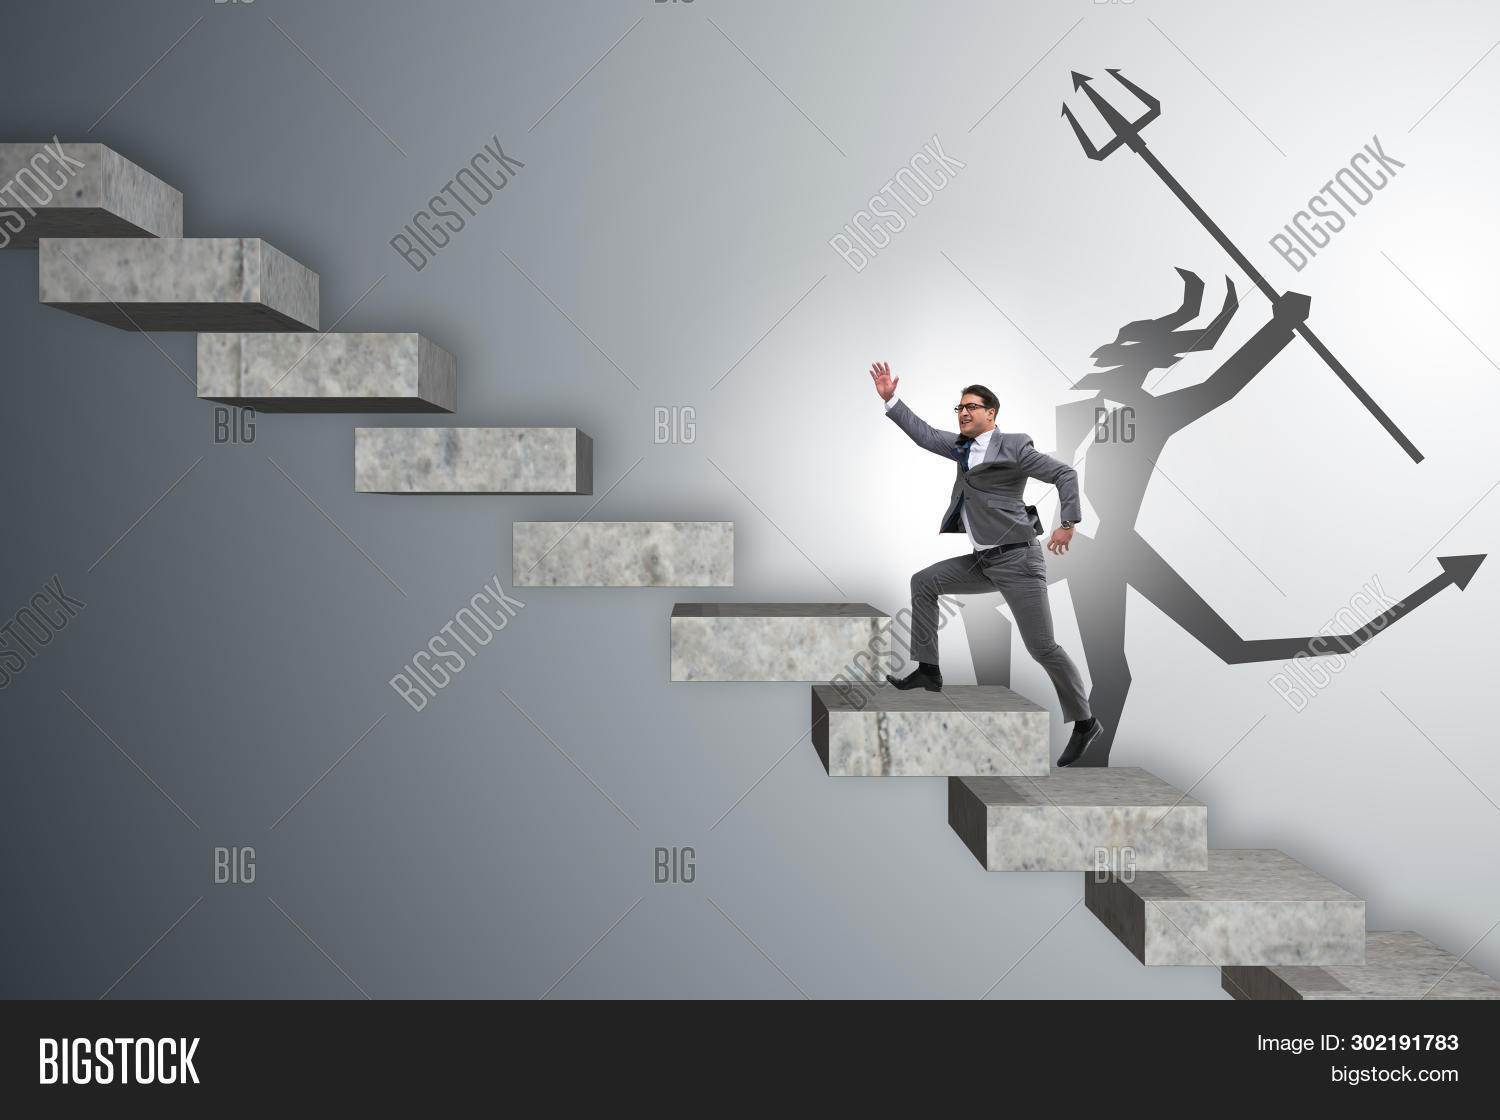 Businessman Alter Ego Image & Photo (Free Trial) | Bigstock